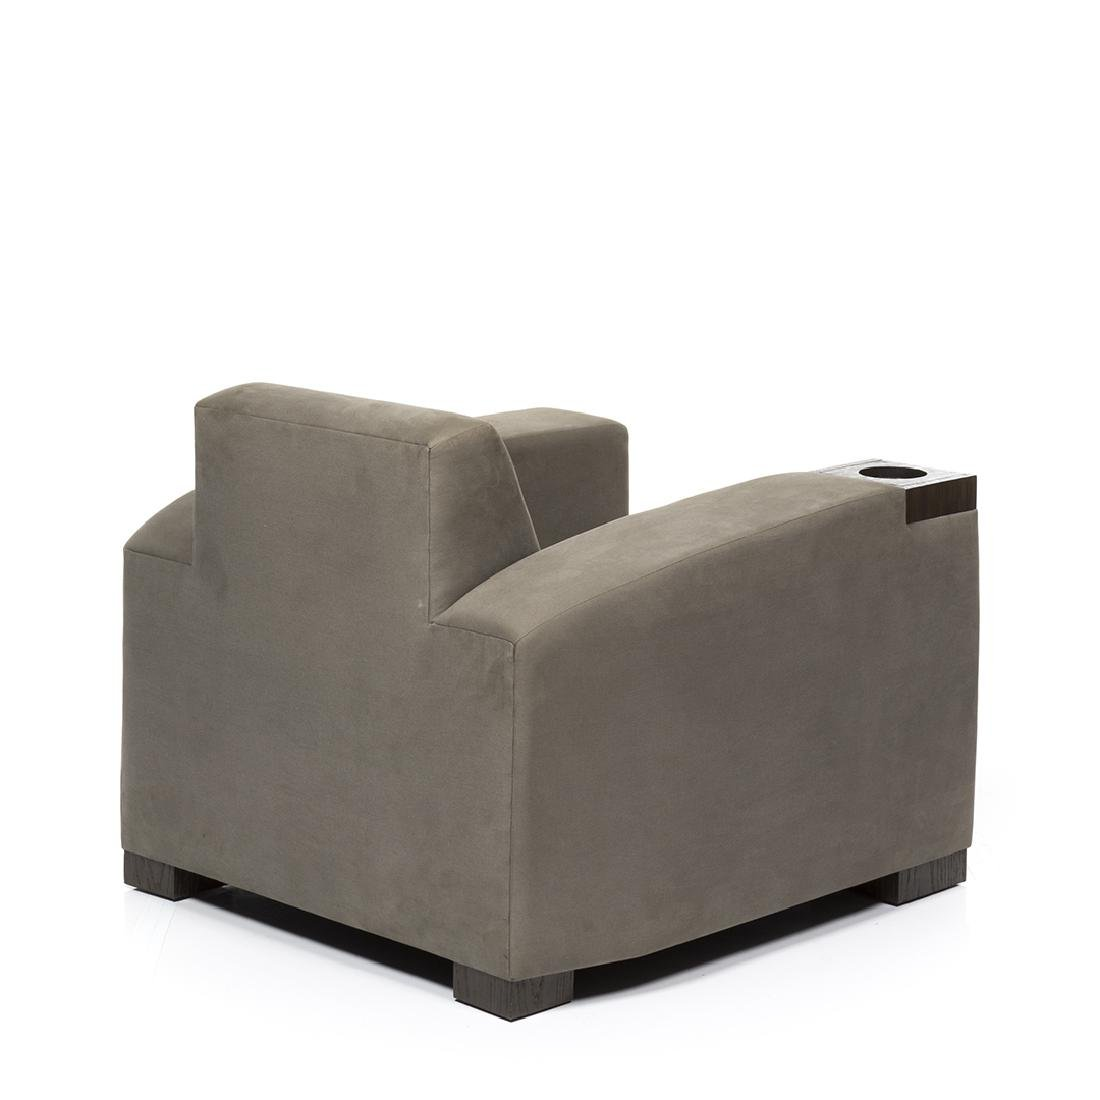 Blackman Cruz Screening Room Lounge Chair - 3